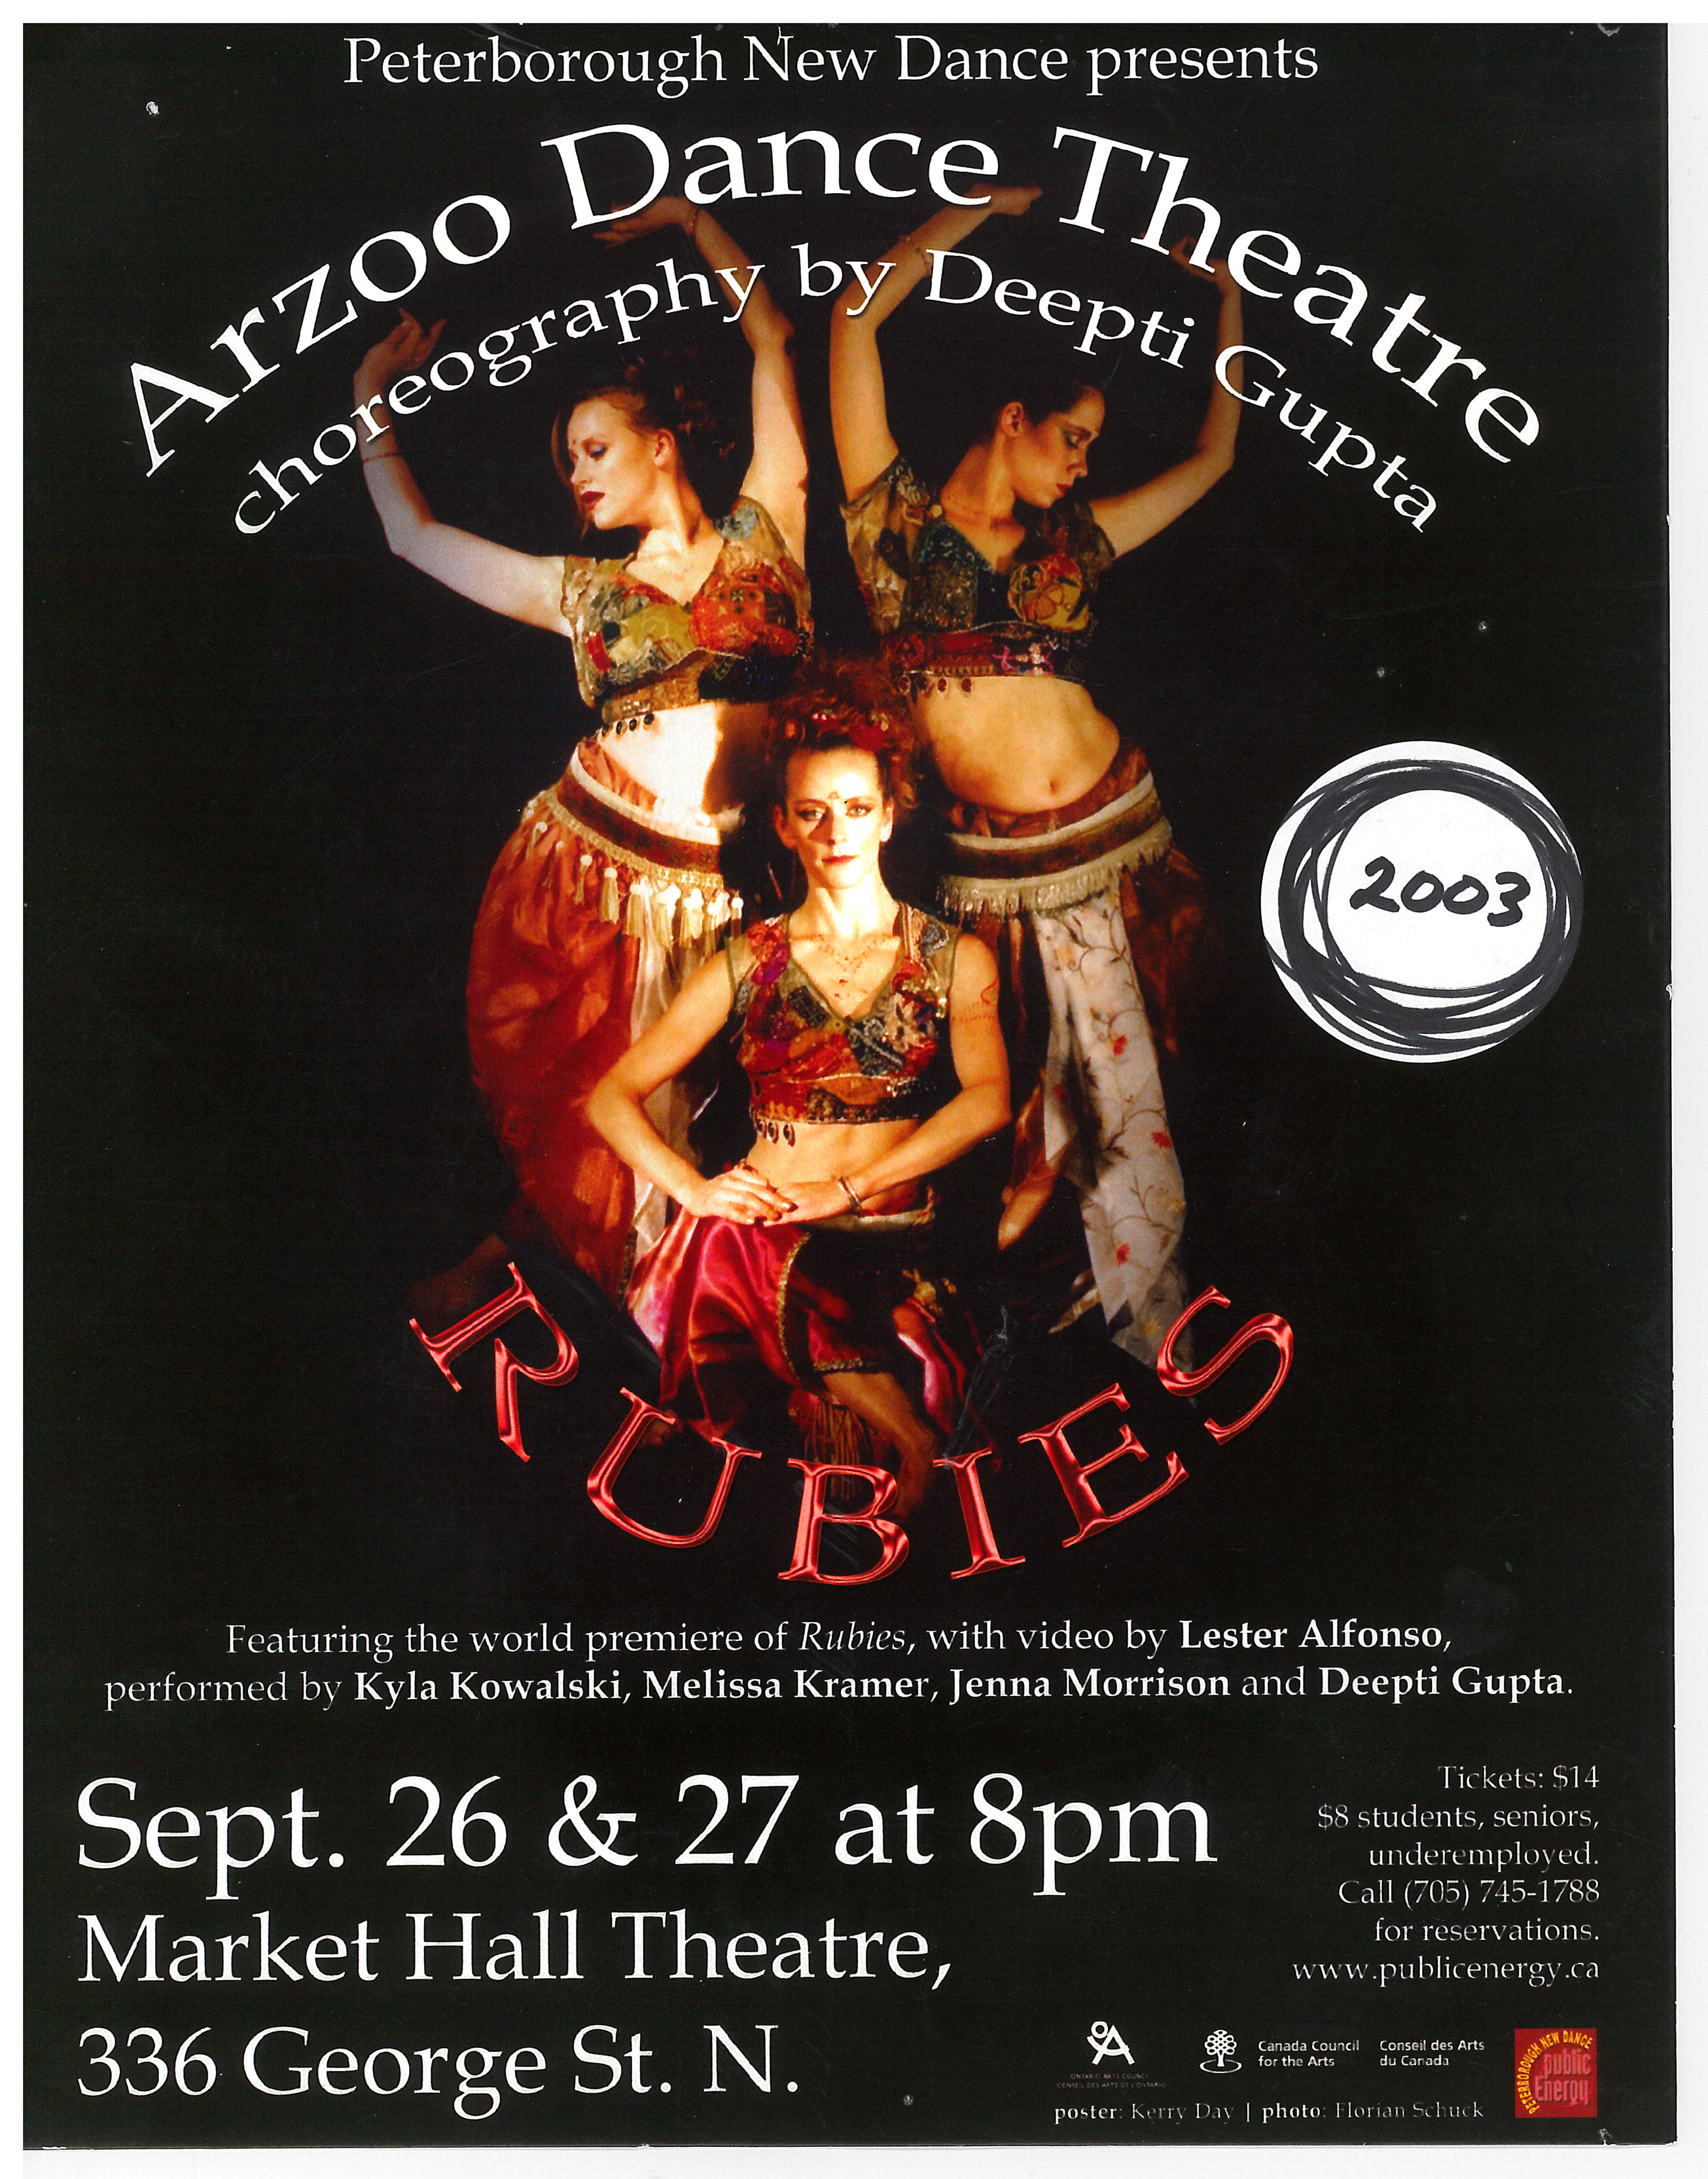 Arzoo Dance Theatre: Rubies Poster for Rubies by Arzoon Dance Theatre in the photo.